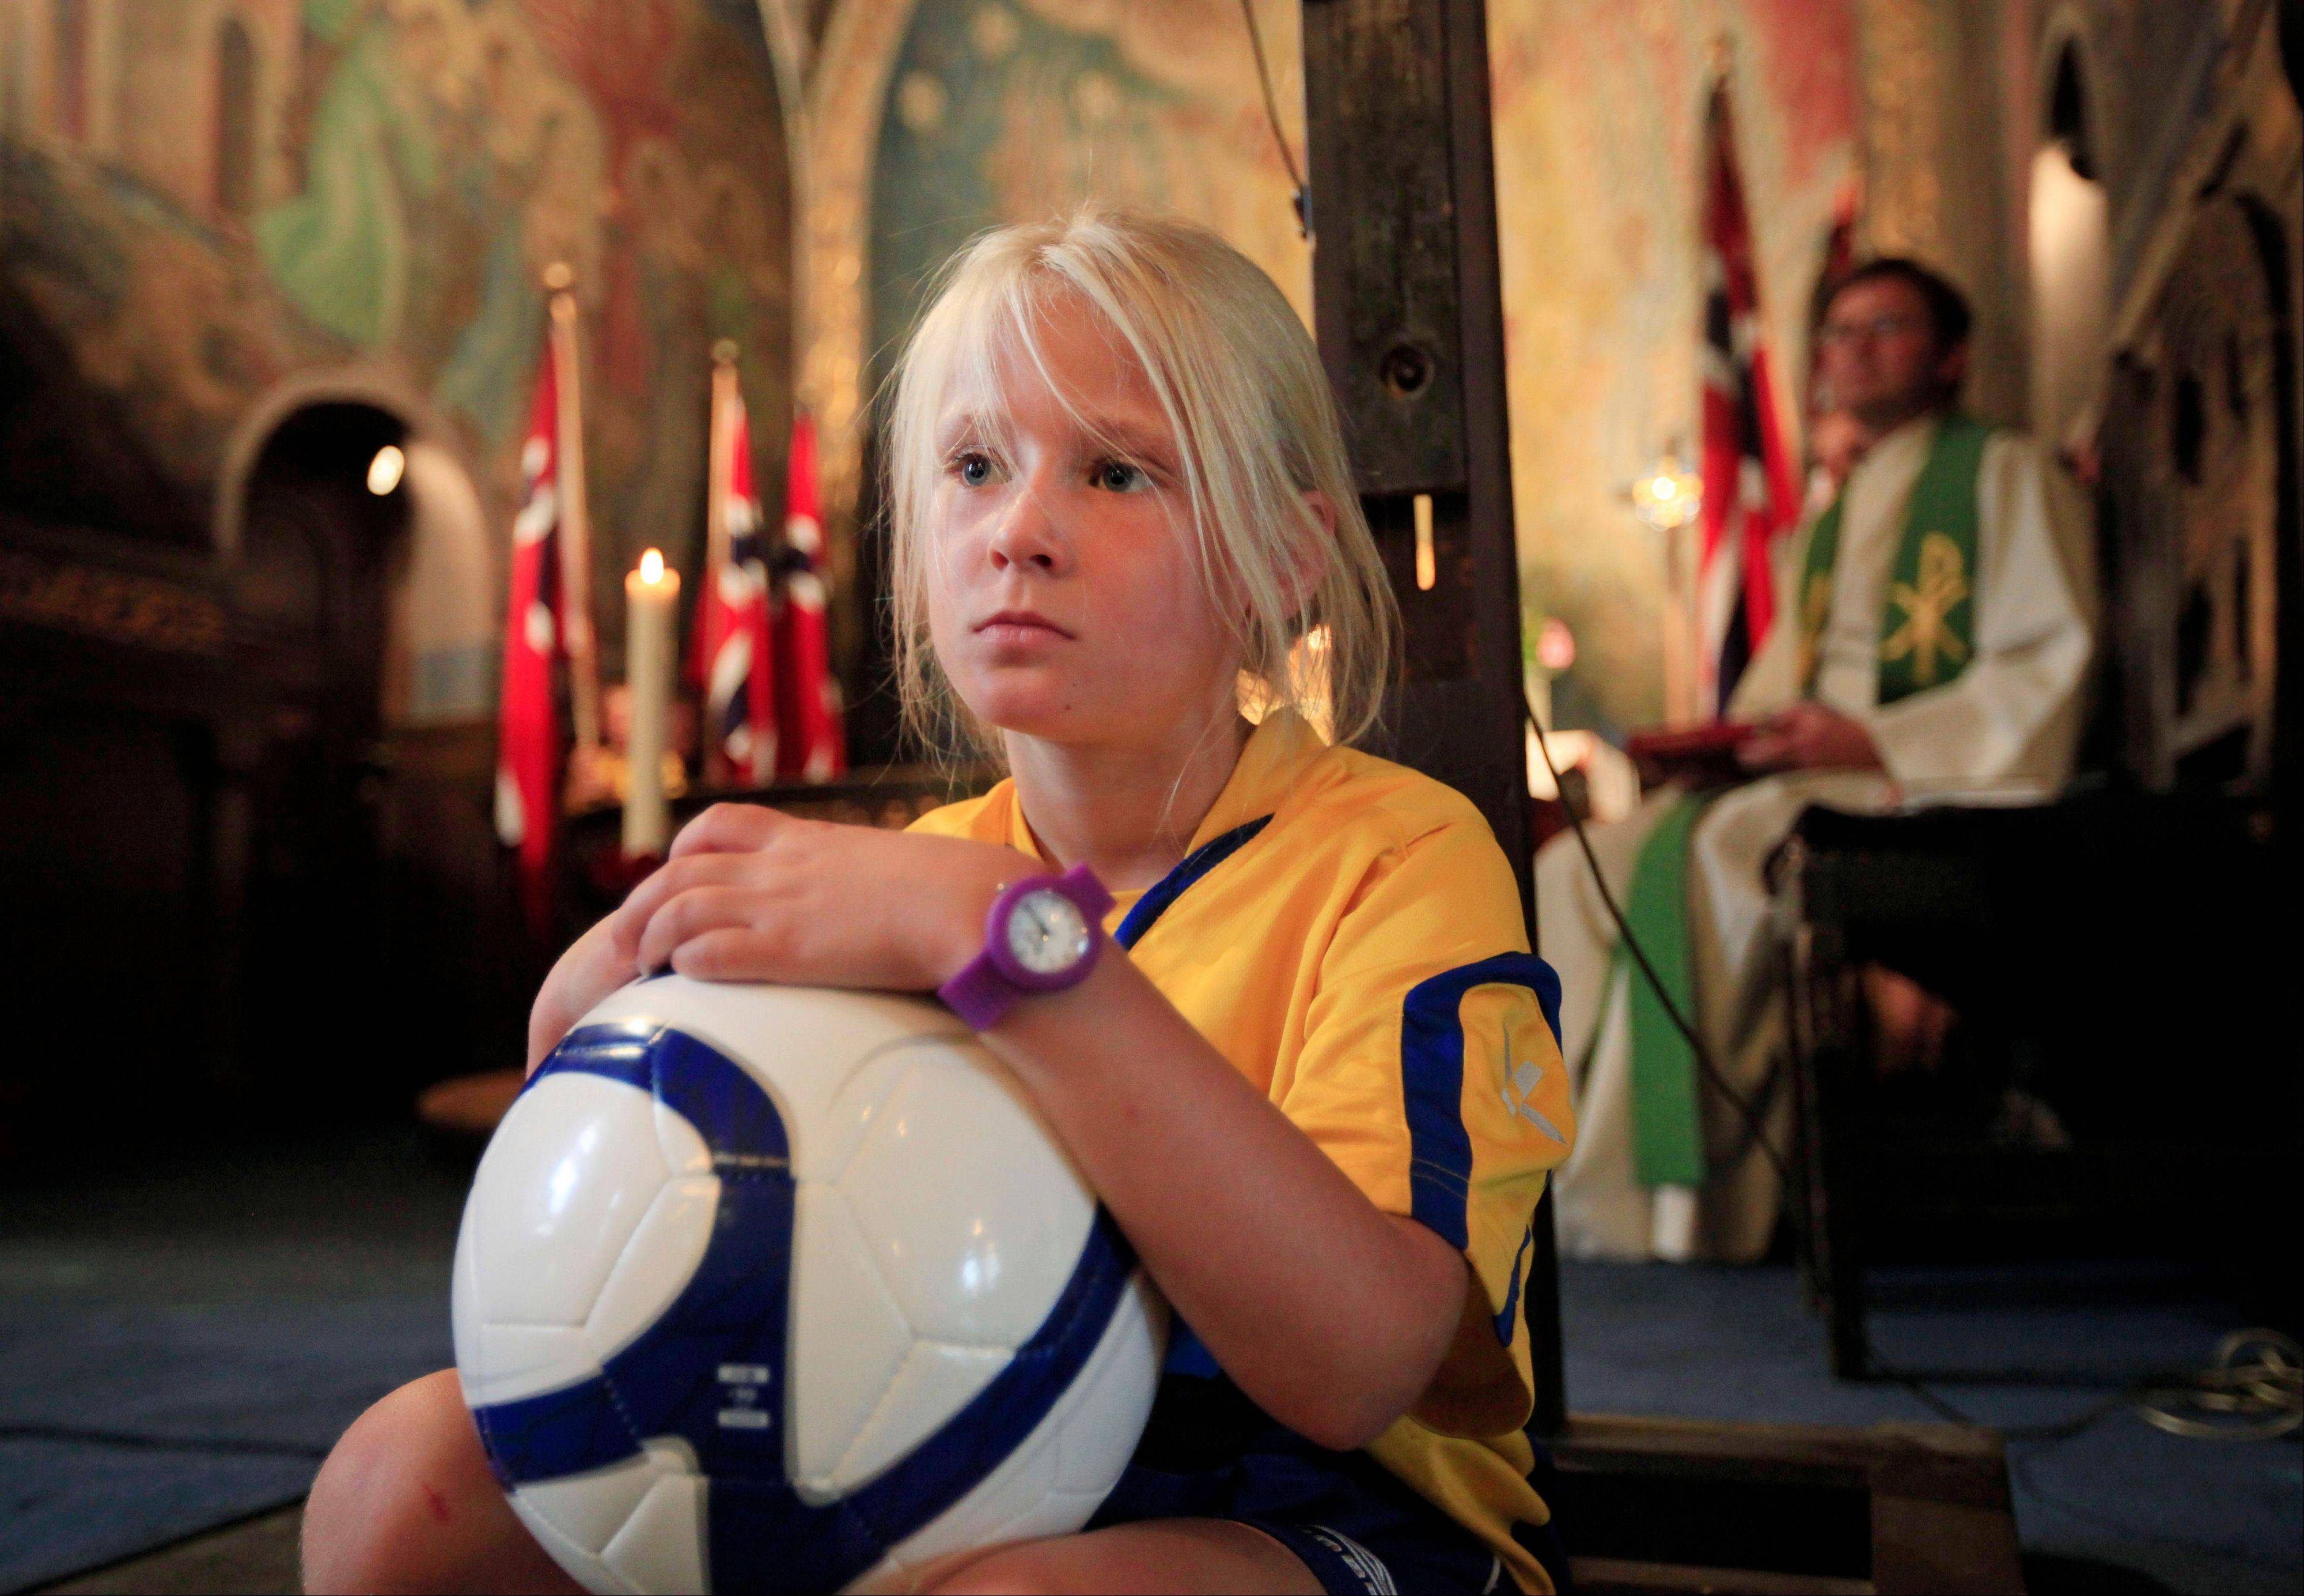 A schoolchild, participating in an international youth soccer tournament, attends a commemoration memorial for the victims of July 22 bomb attack and shooting rampage in Oslo on Sunday.